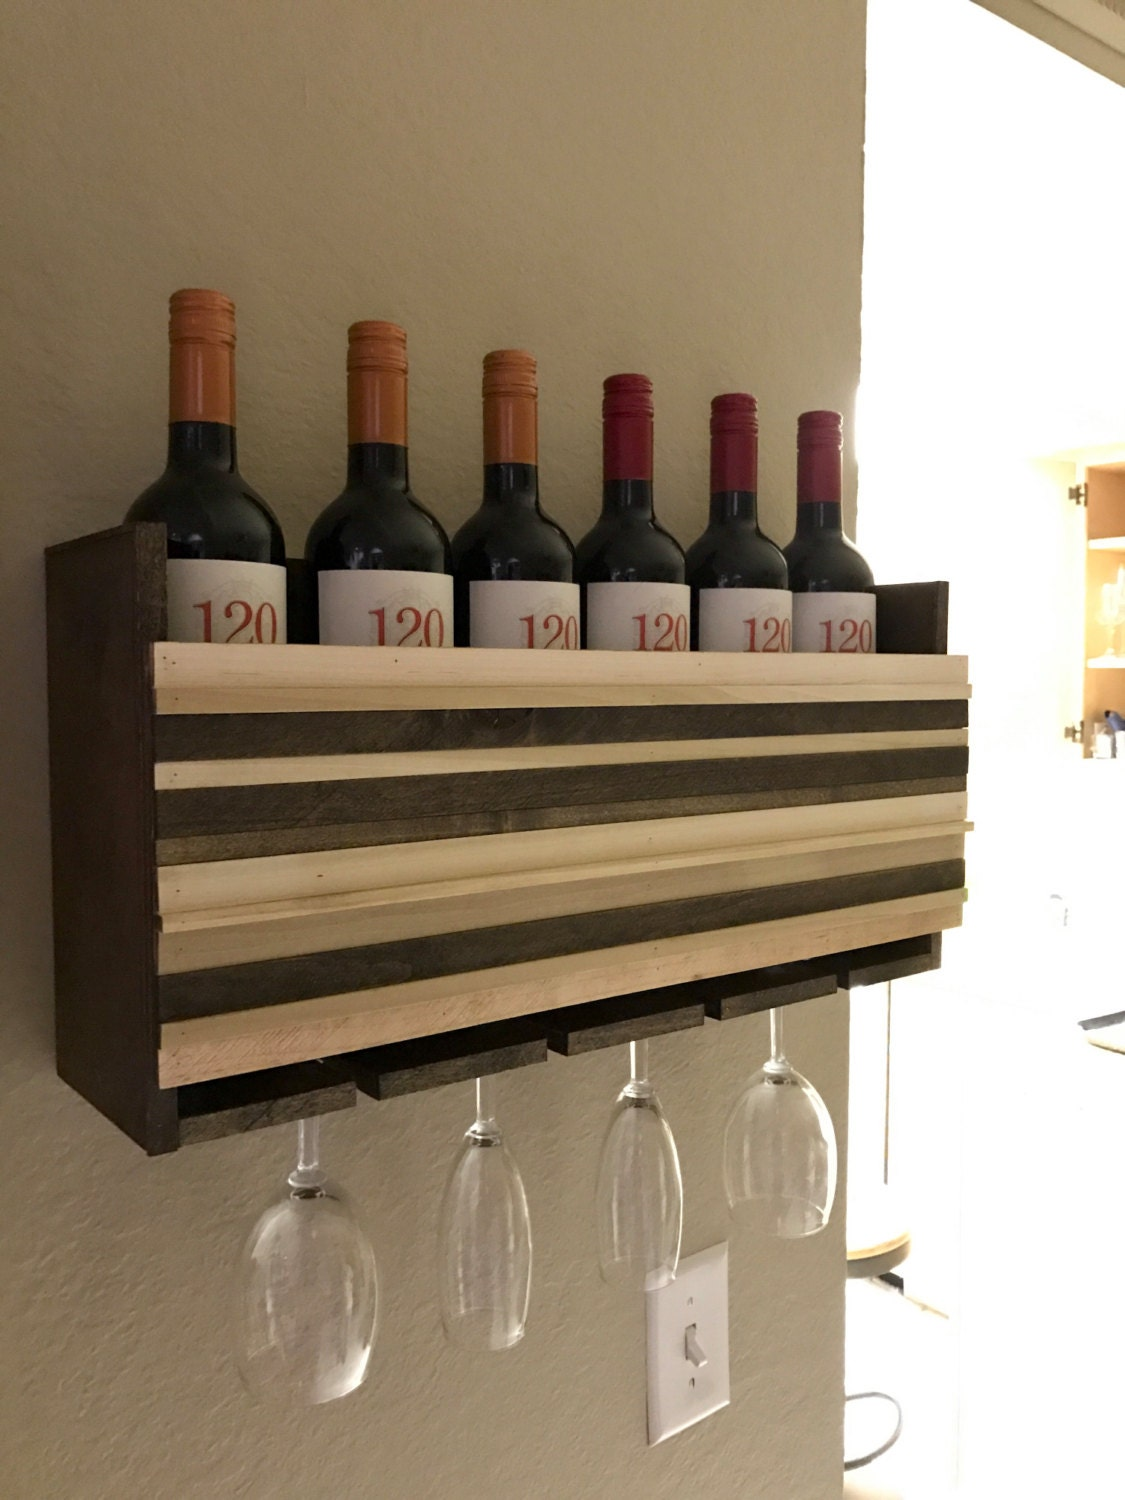 Wall Mounted Wine Rack Holder Wine Glass Holder